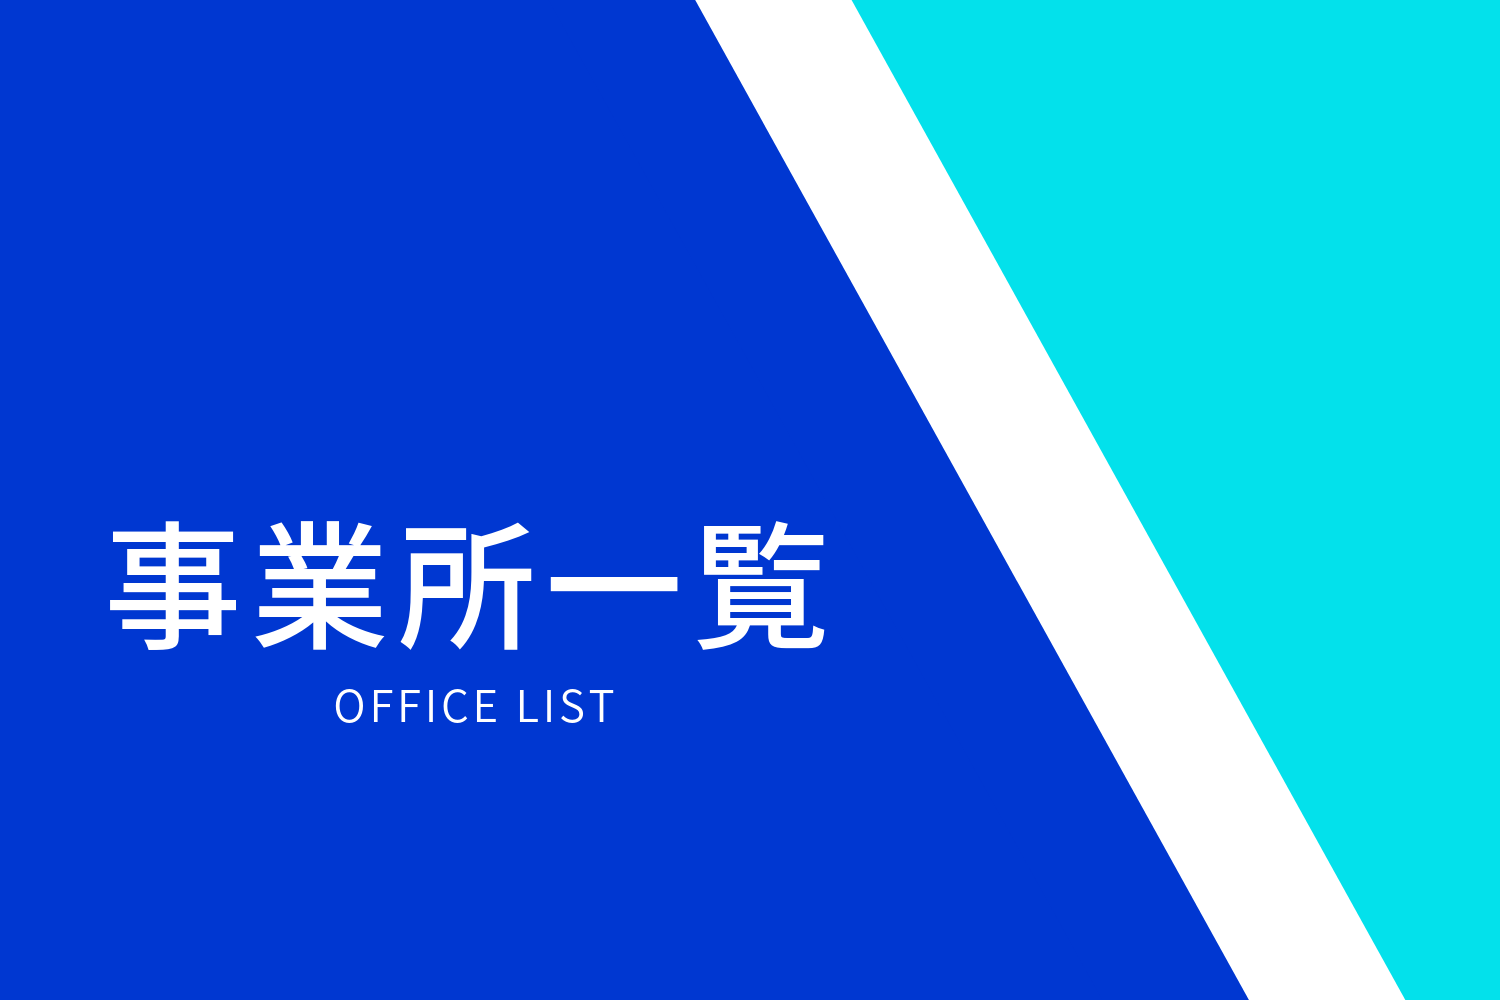 OFFICE LIST